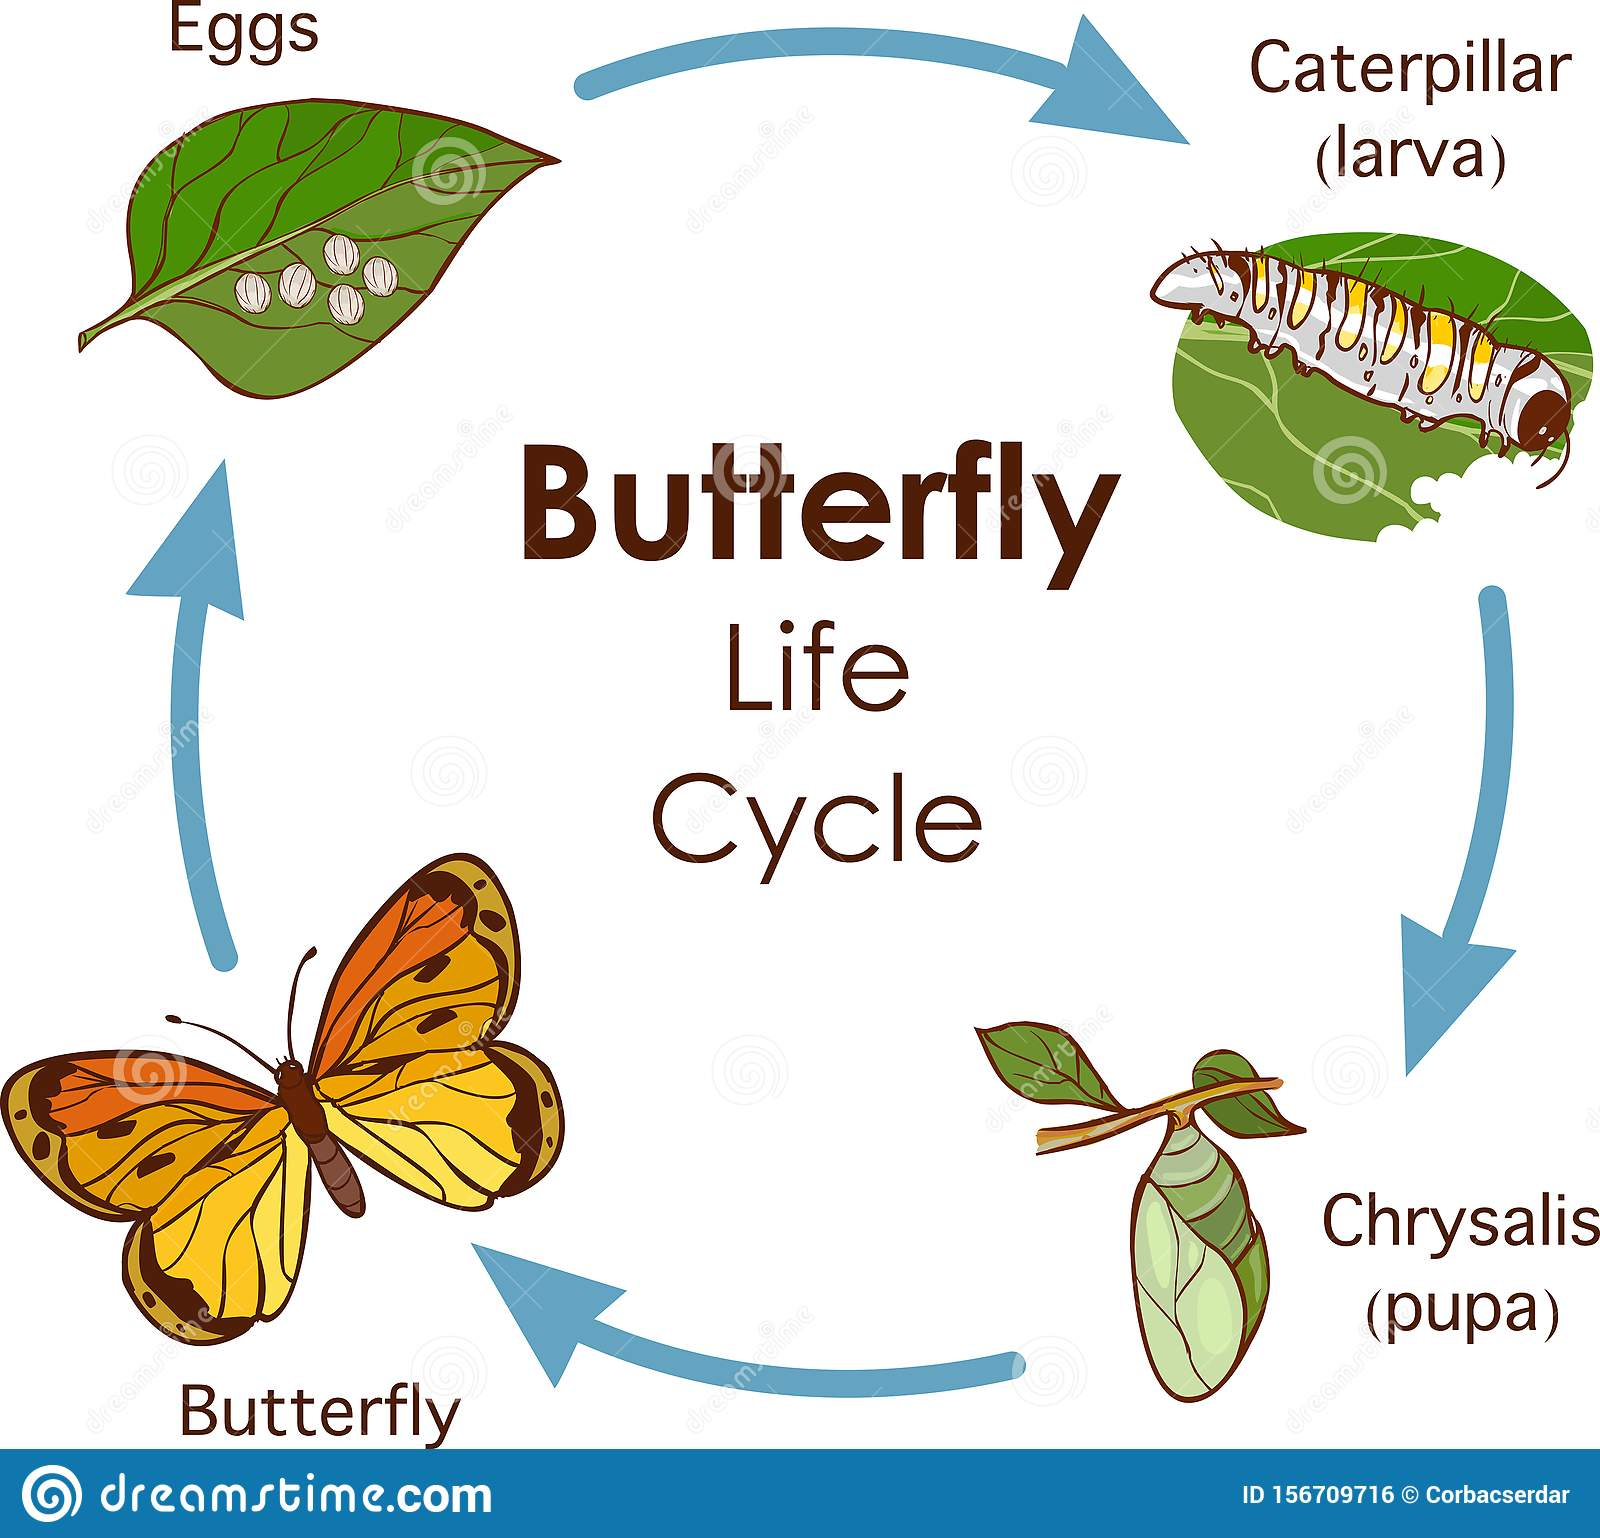 Life Cycle Of A Butterfly Diagram Stock Illustration Wiring Diagram